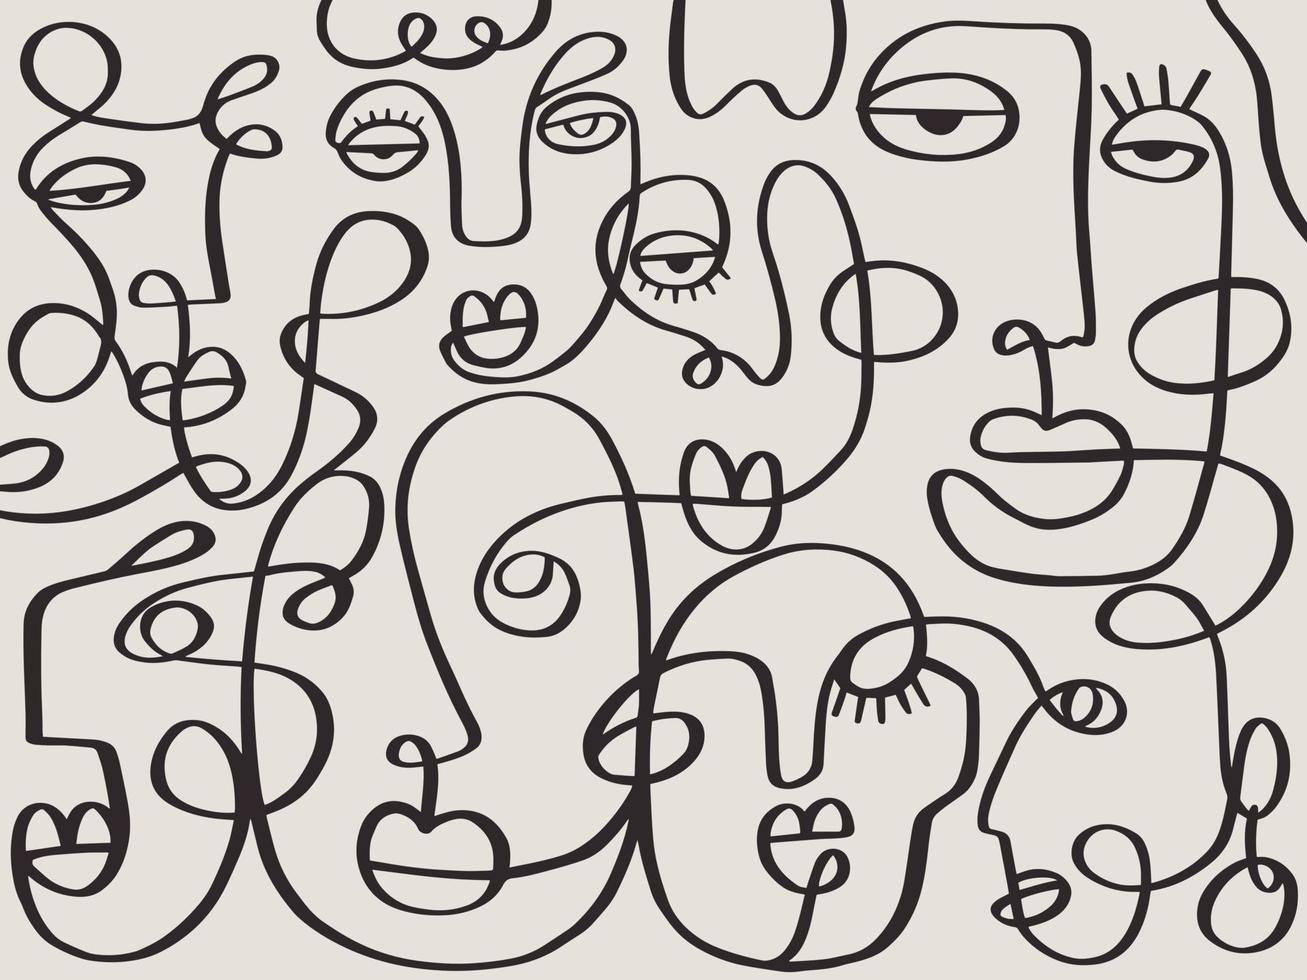 One line drawing abstract face abstract pattern. Modern minimalism art, aesthetic contour. Continuous line background with woman and man faces. Wall poster decor vector